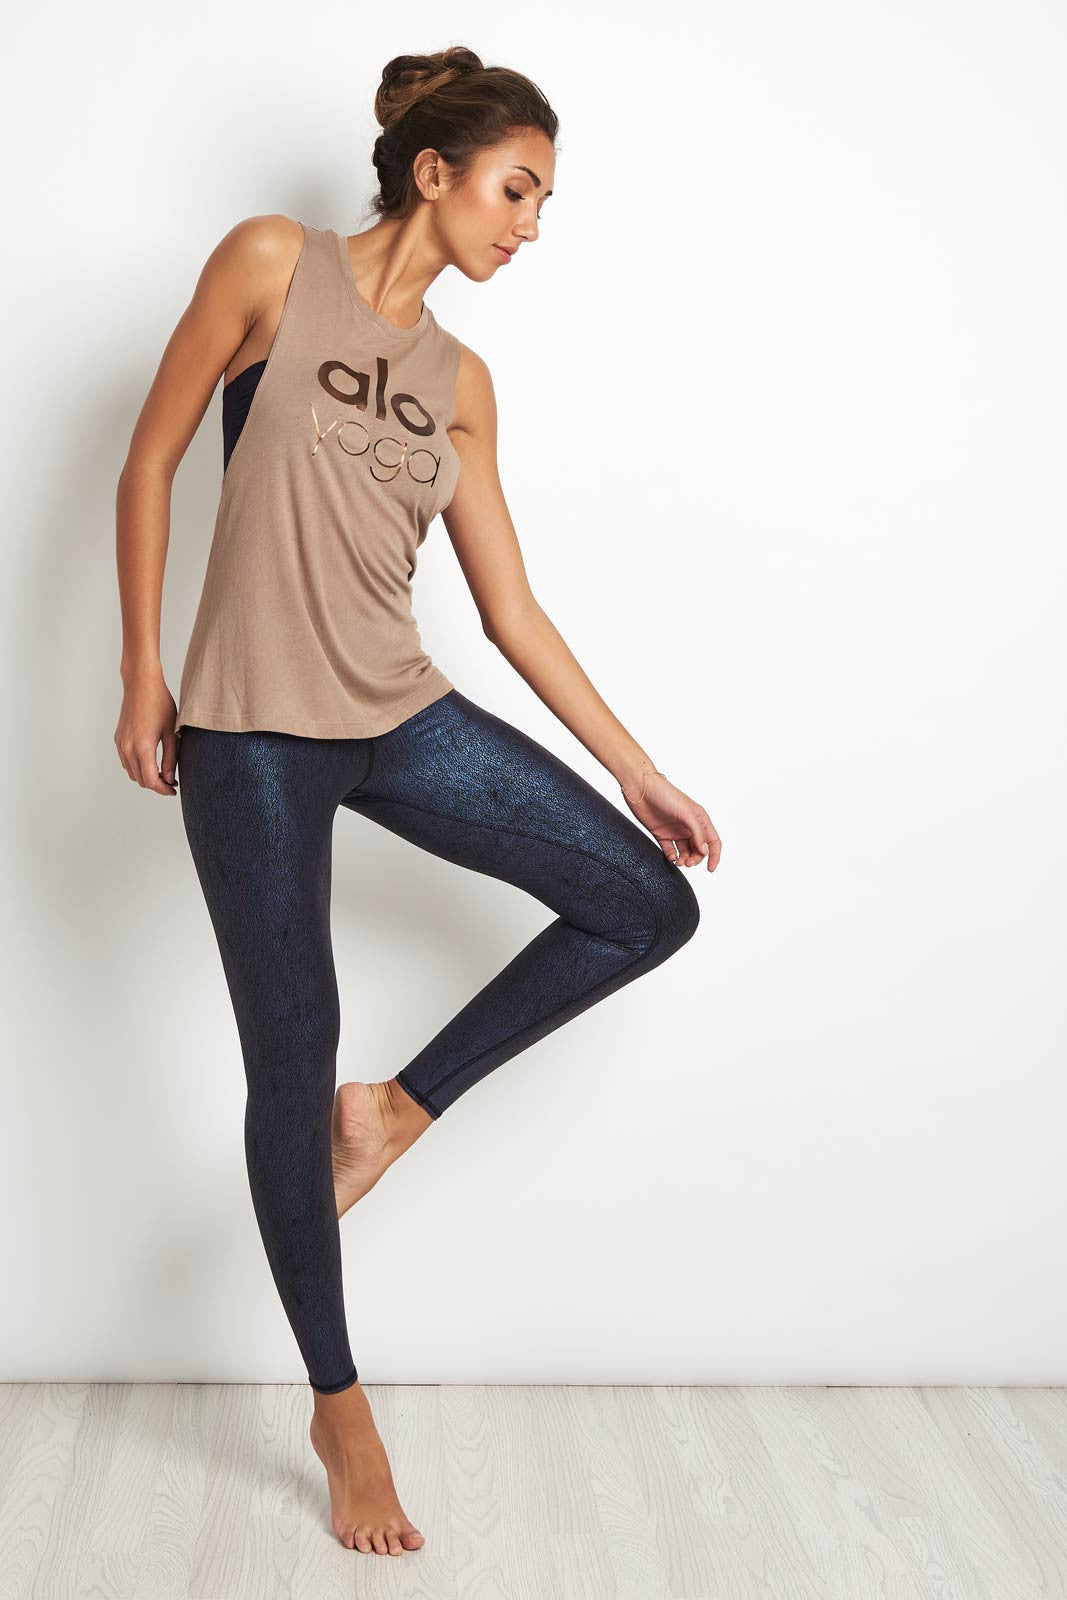 Alo Yoga Wanderlust Muscle Tank Gravel image 4 - The Sports Edit